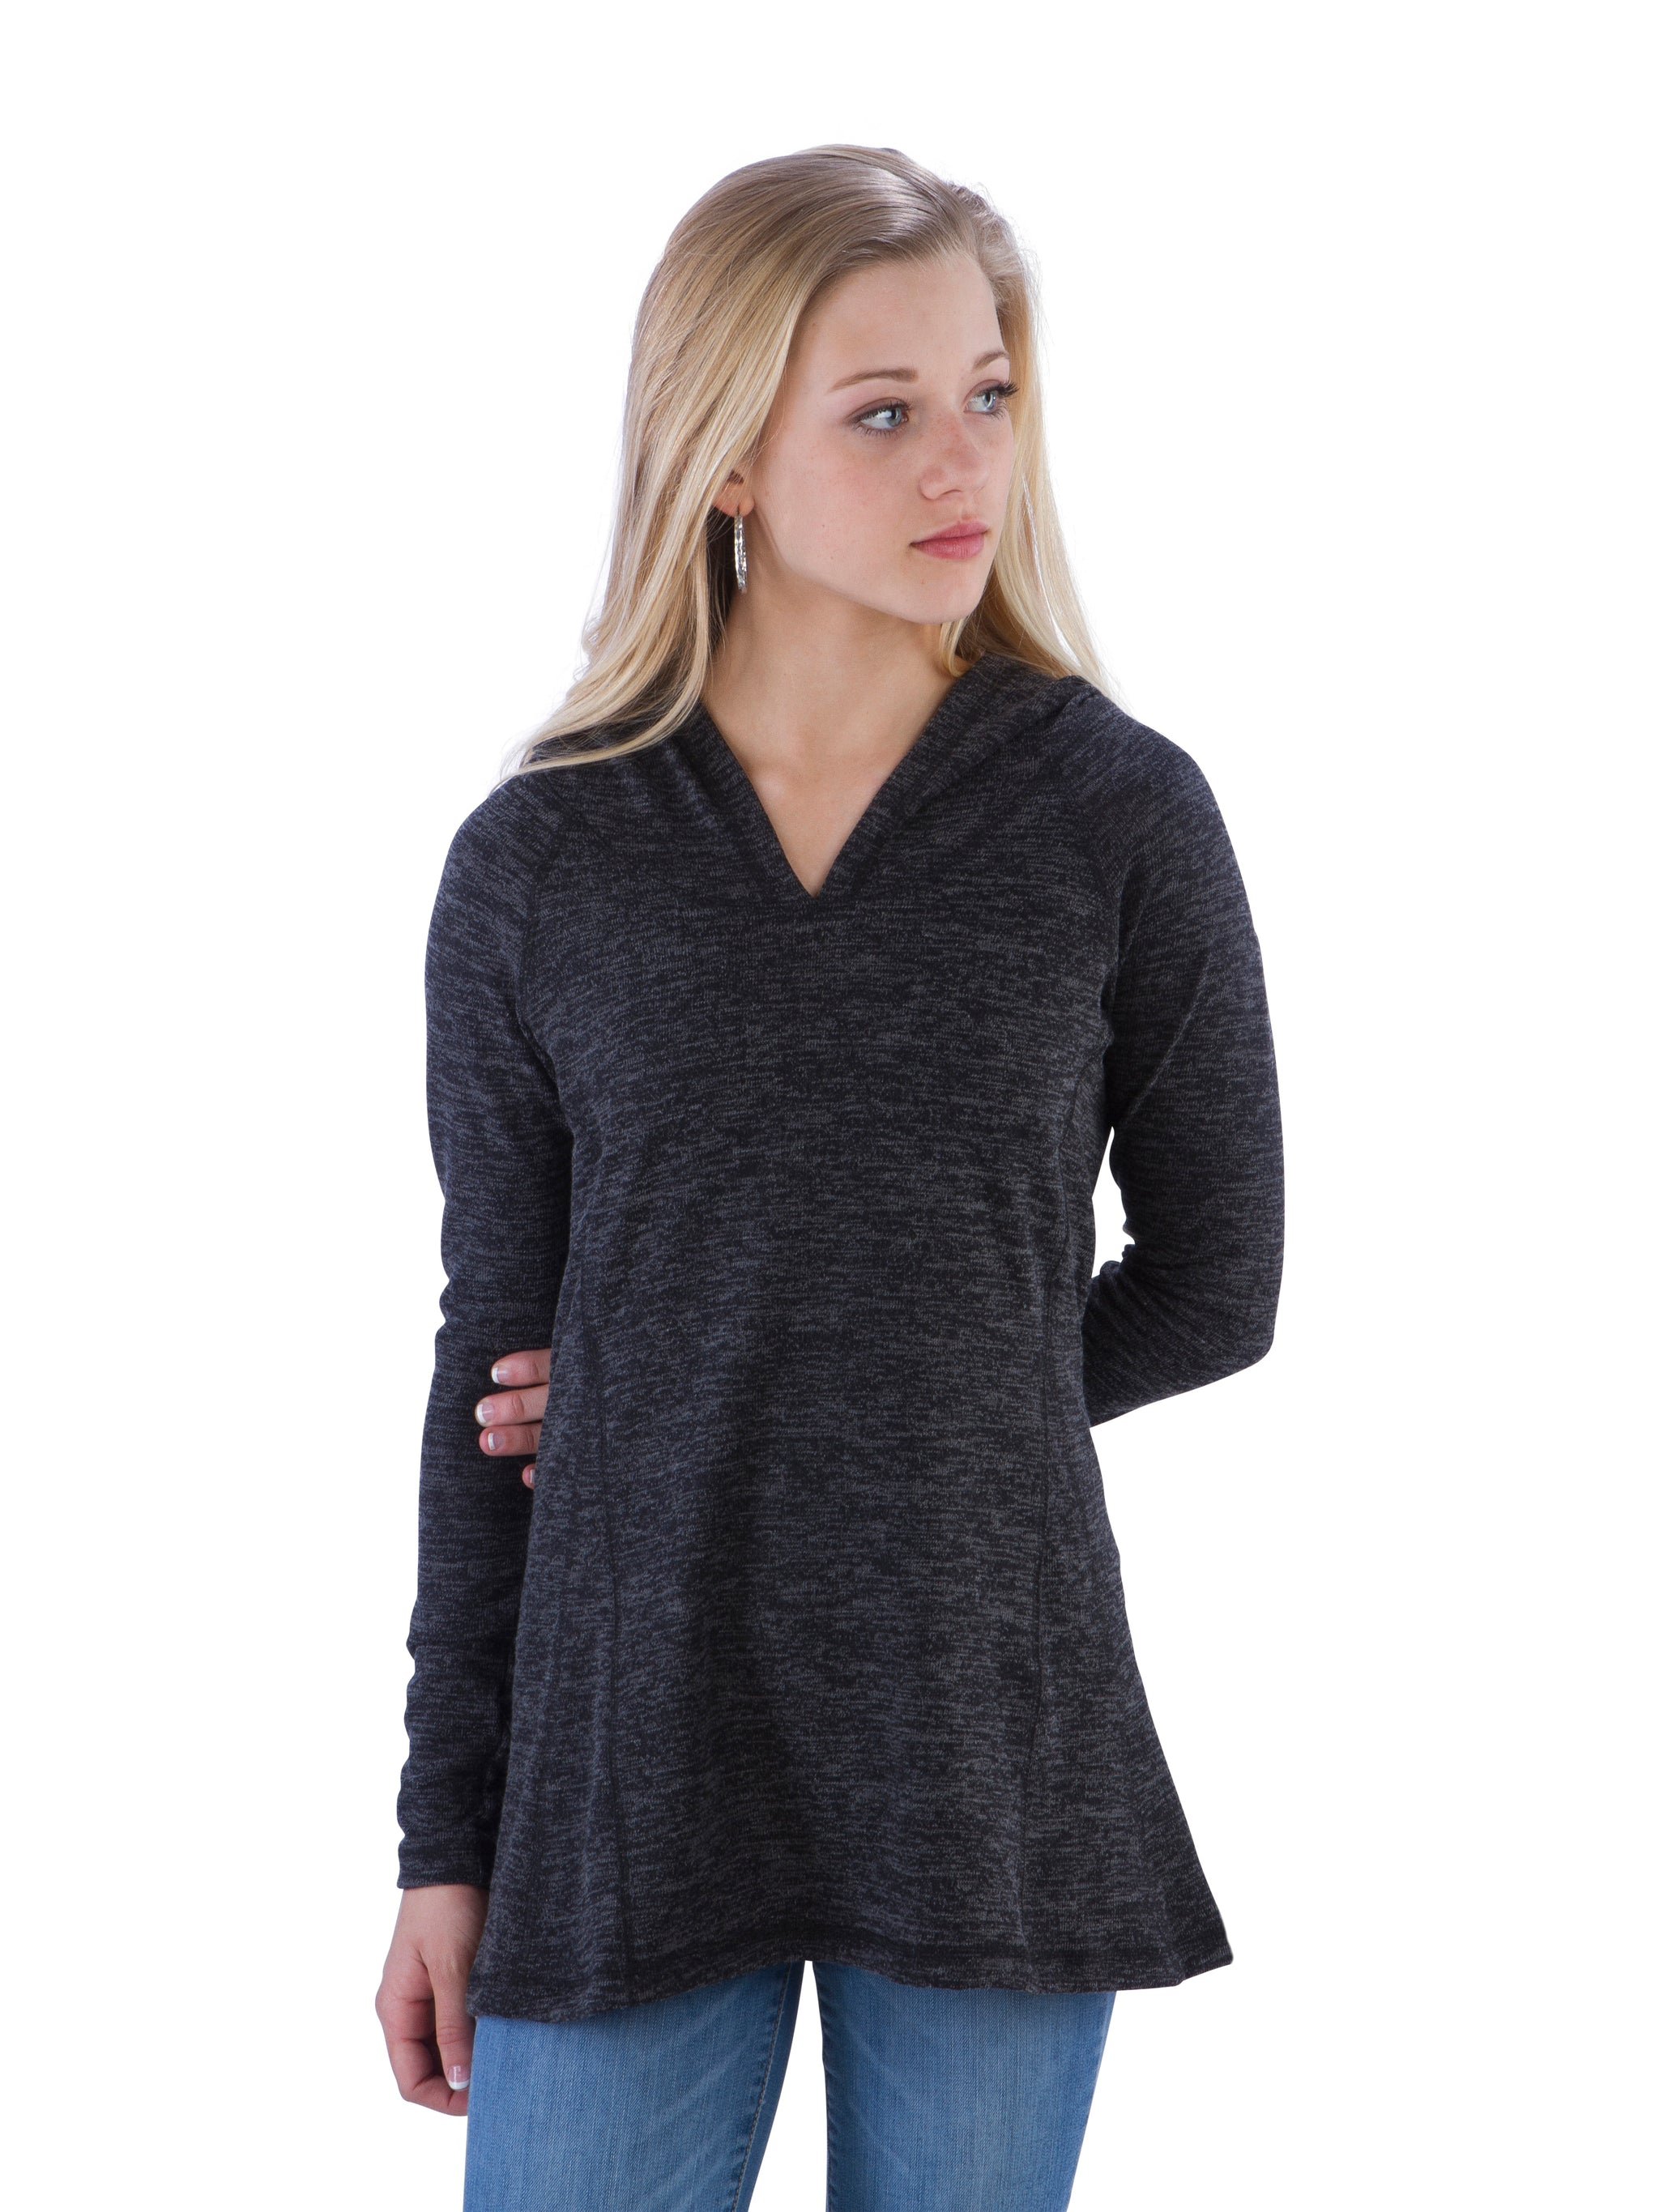 Ruched Back Hoodie with Long Sleeves and Top Stitching